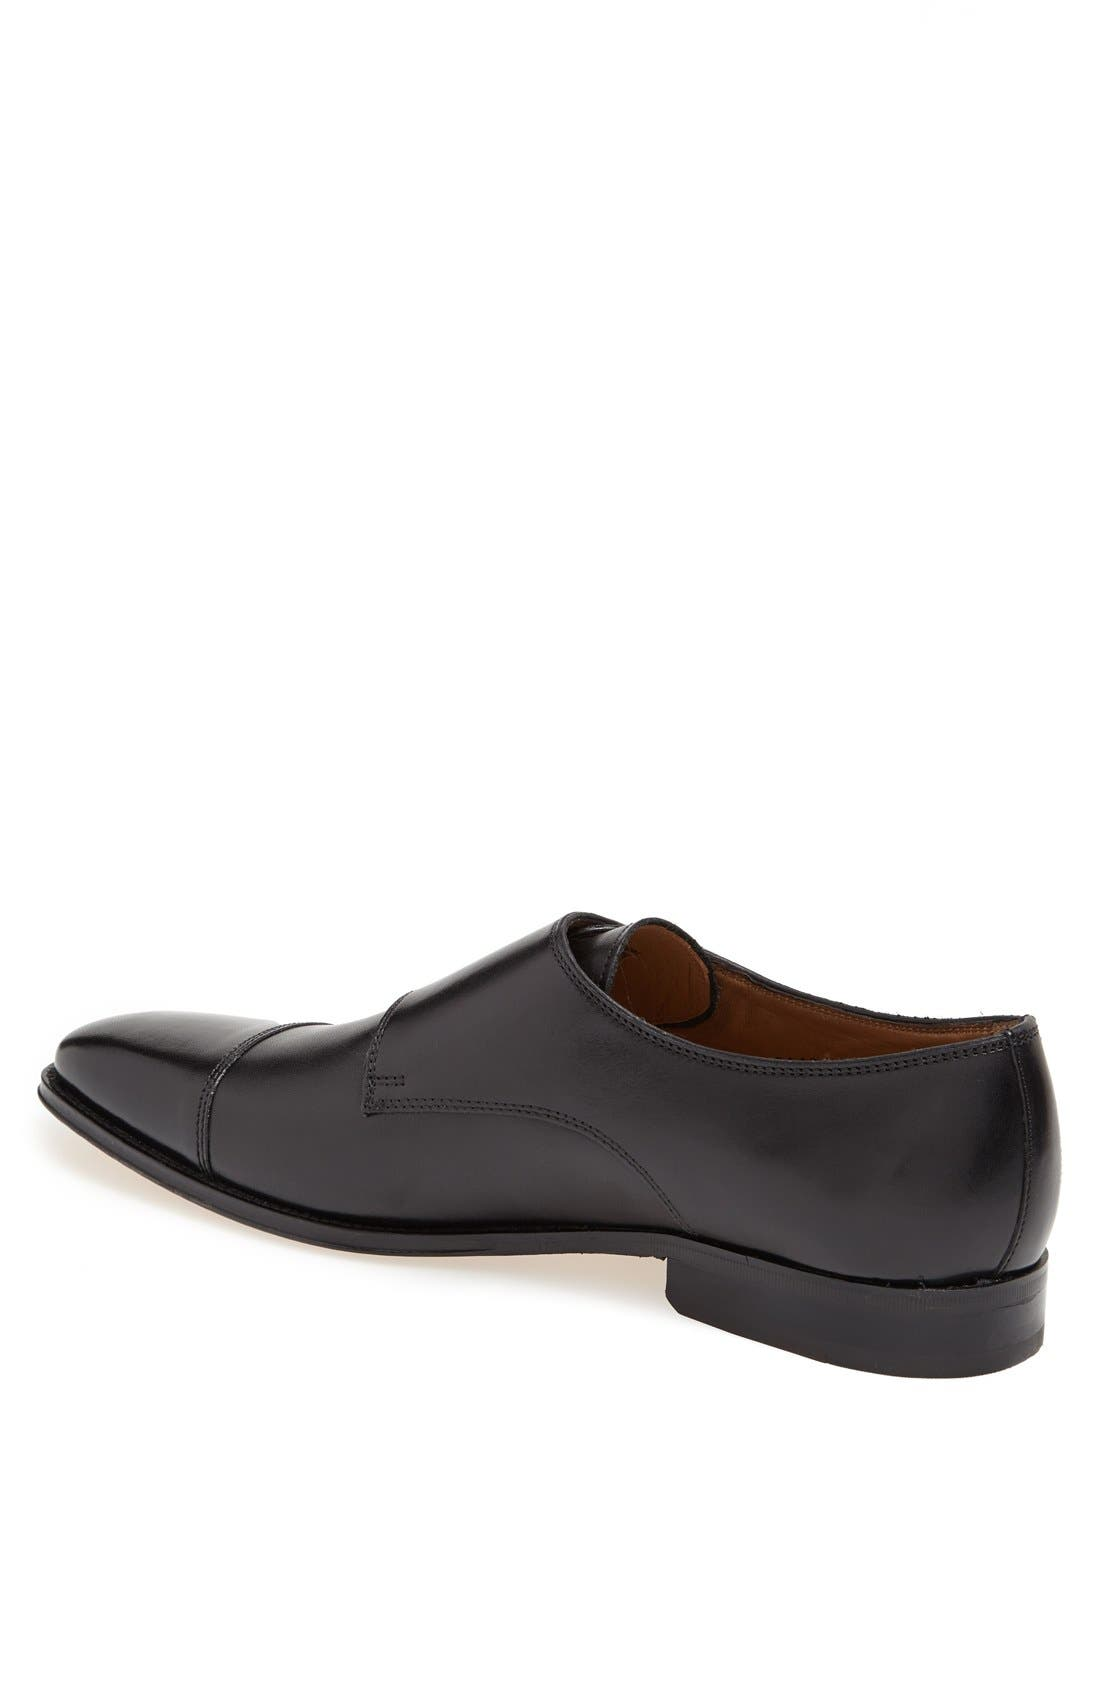 'Classico' Double Monk Strap Slip-On,                             Alternate thumbnail 2, color,                             BLACK